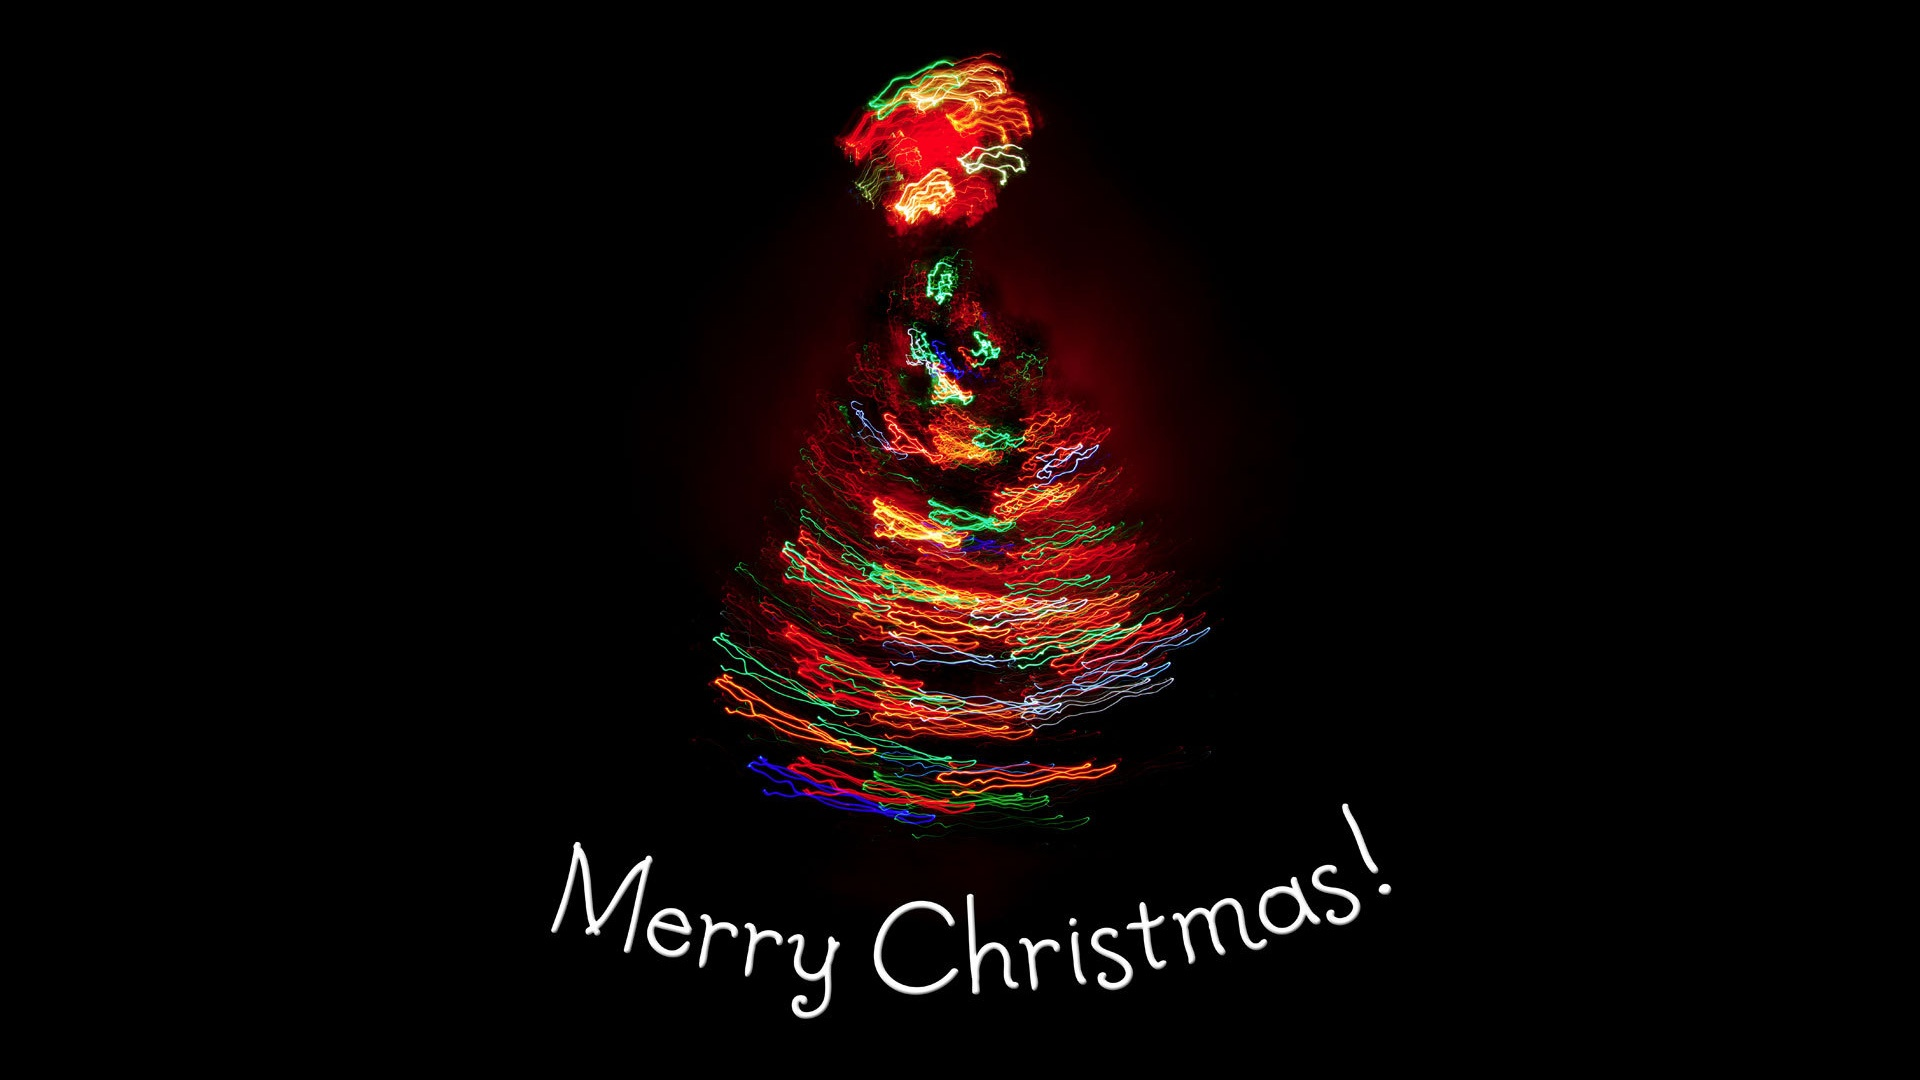 Free Download Merry Christmas Wallpapers Pictures Images